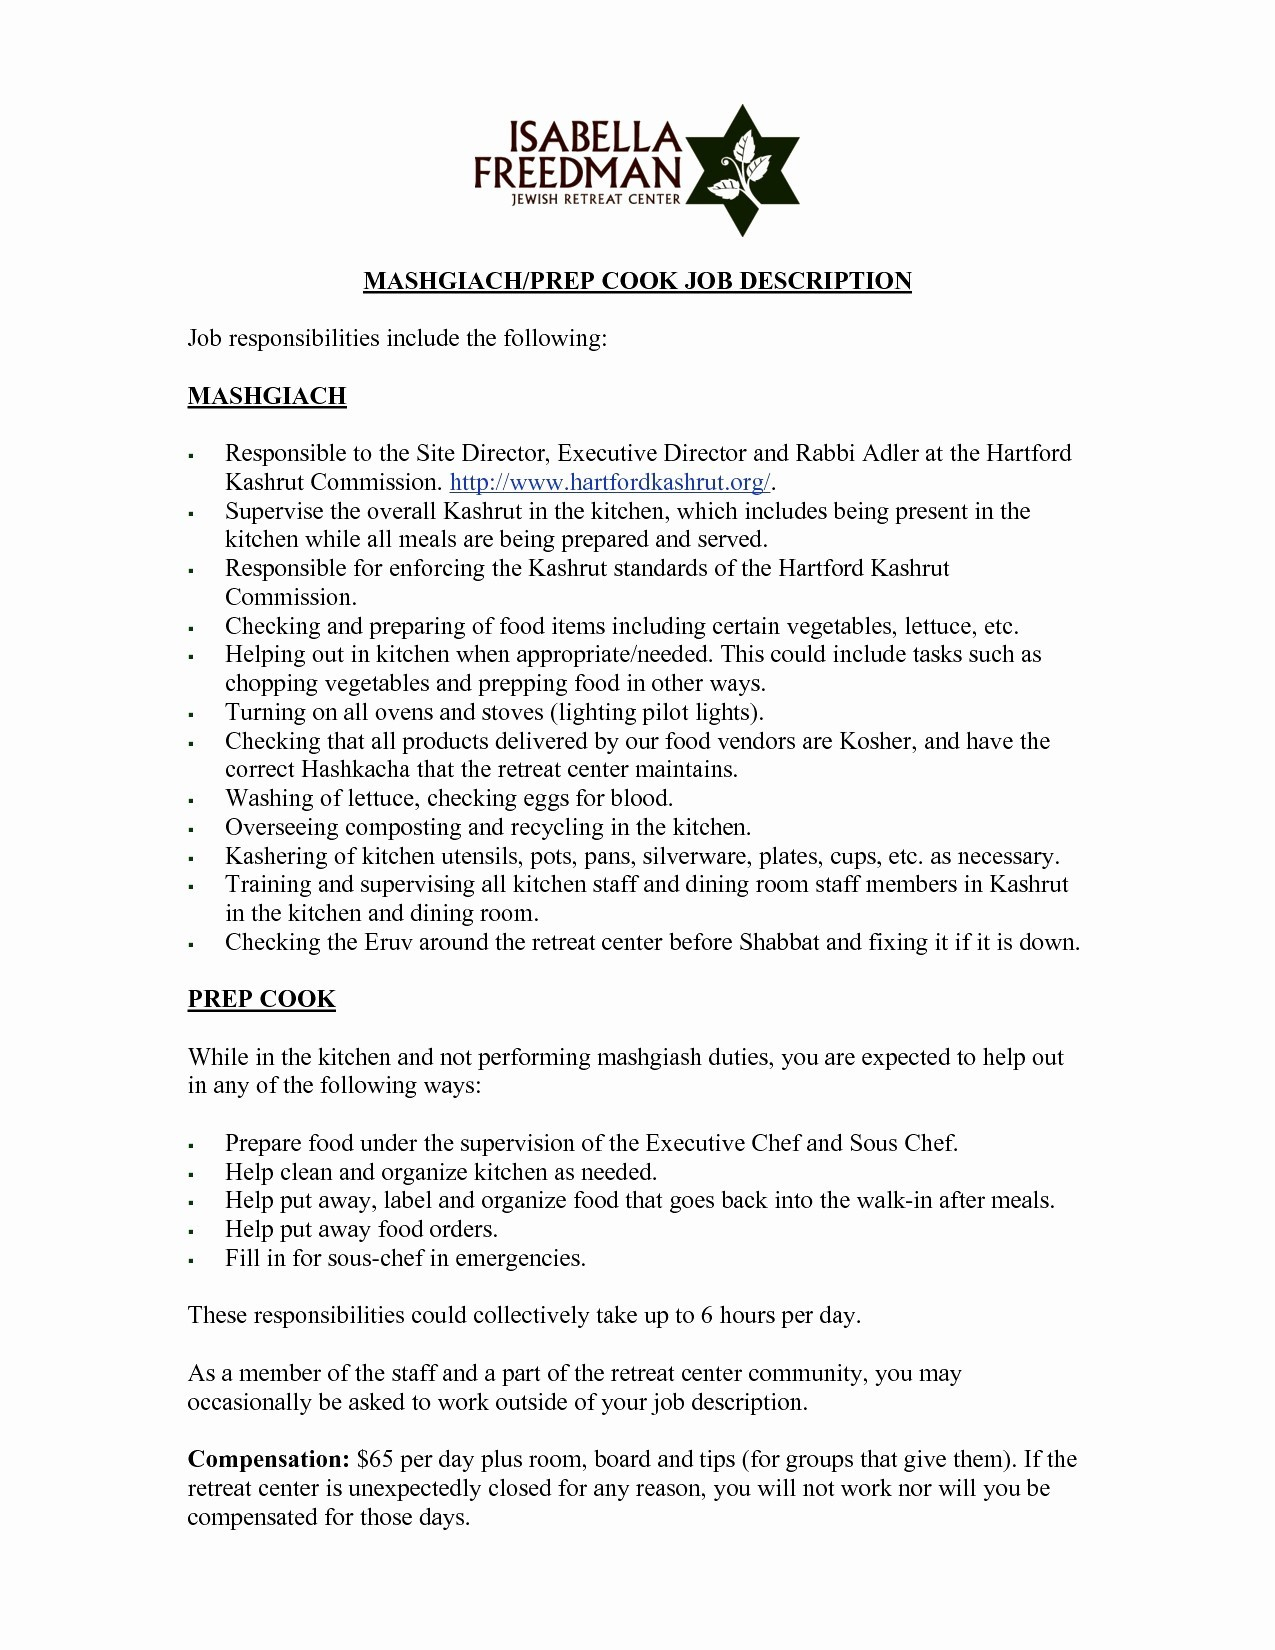 Cover Letter Template for Administrative assistant Job - Executive assistant Sample Resume Best Elegant Example Resume